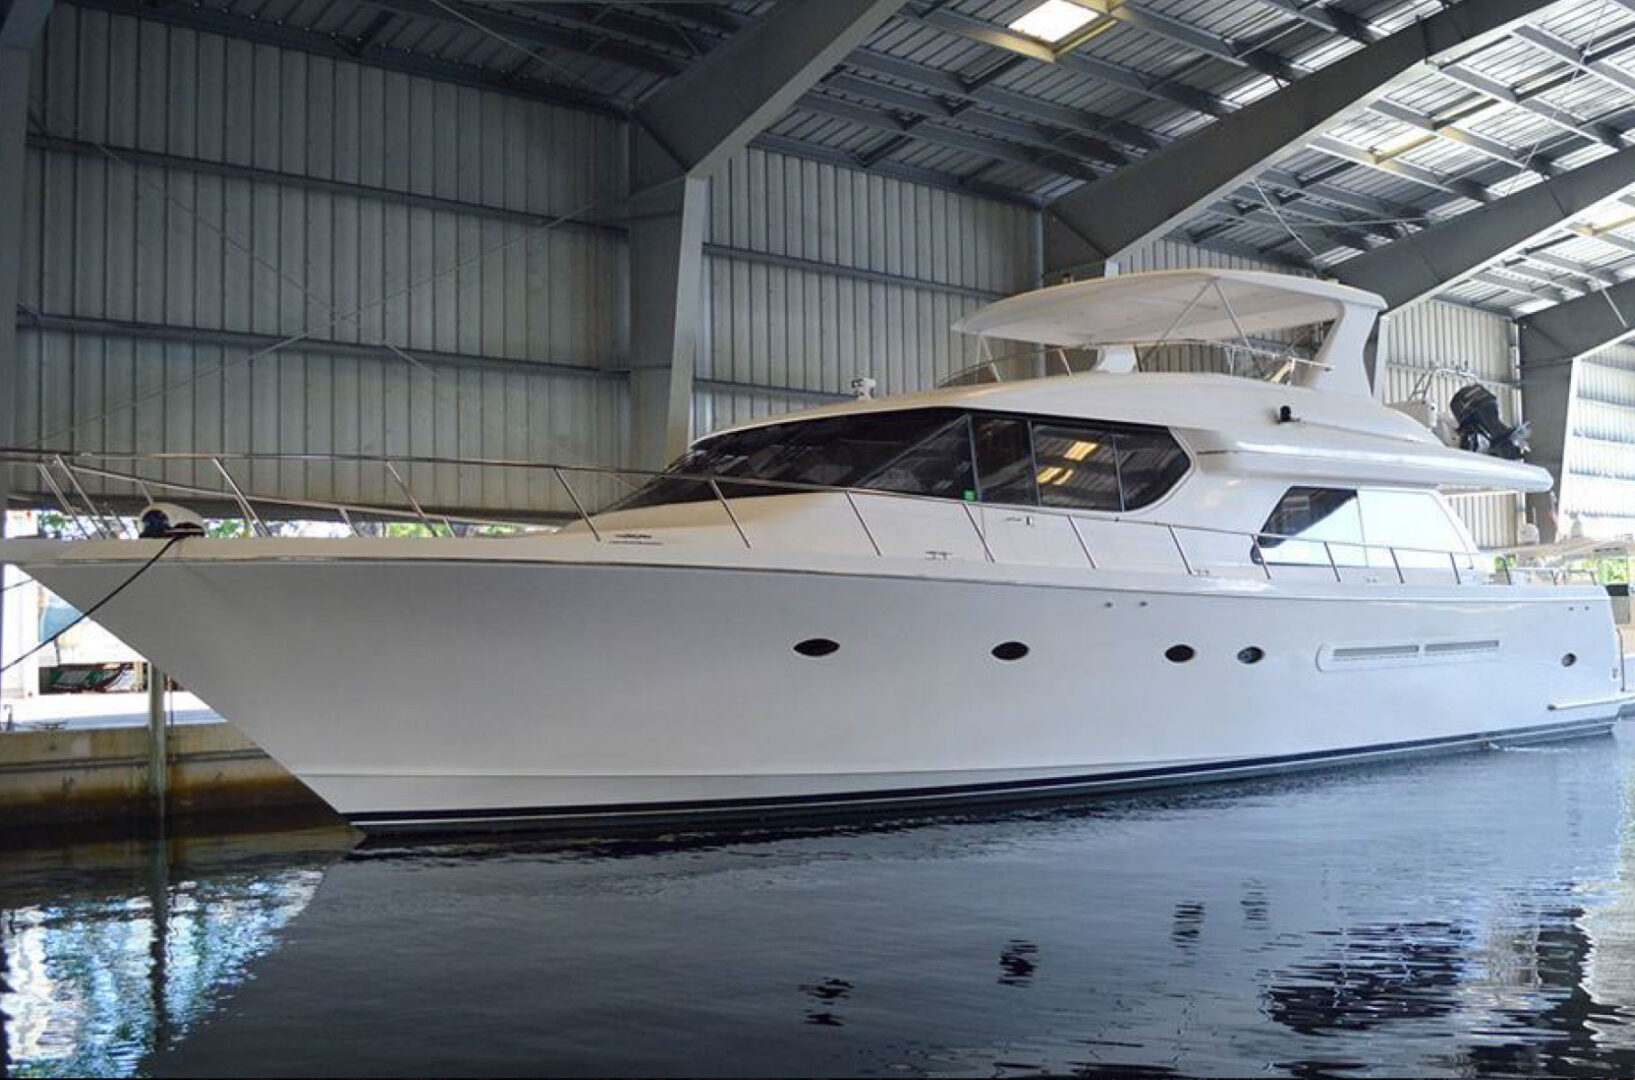 A Carol C yacht in a covered dock